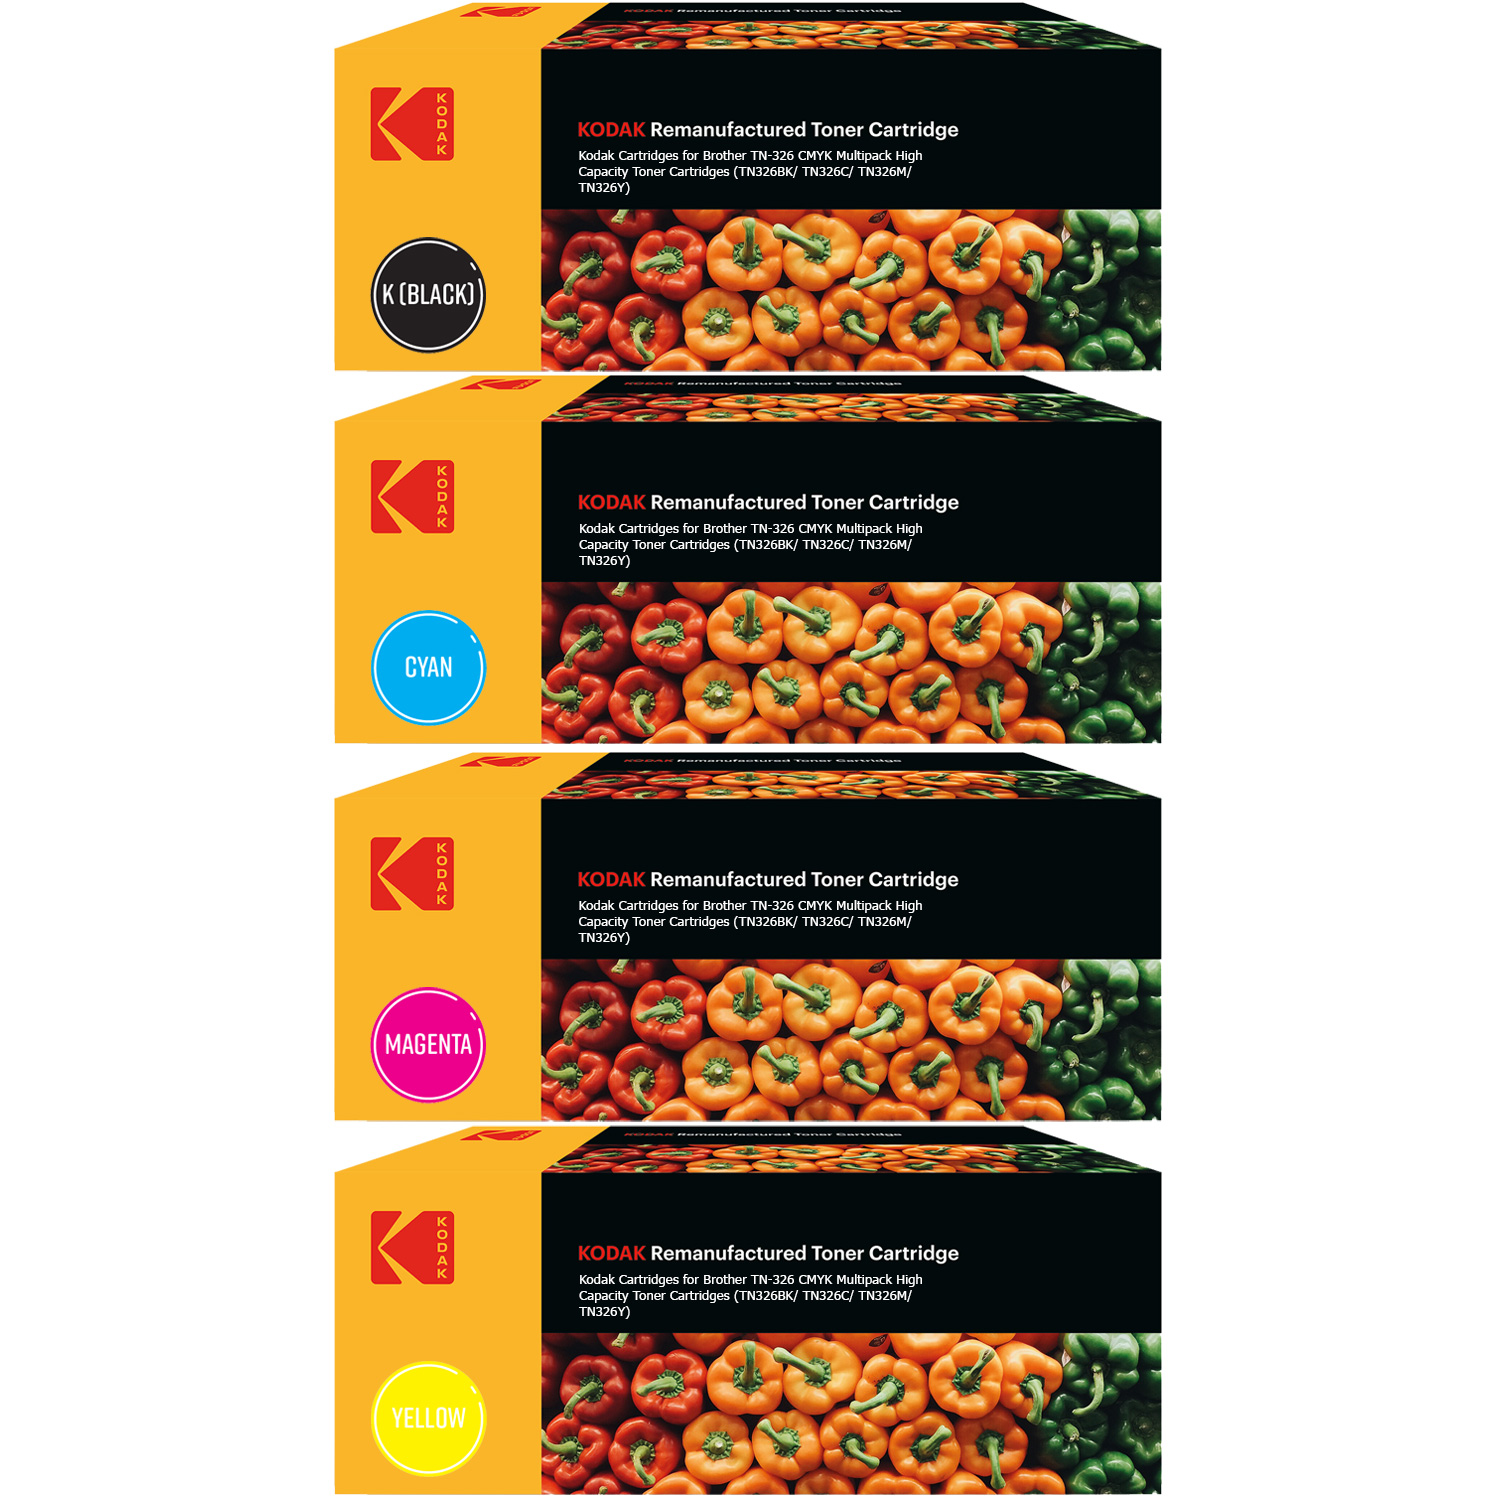 Ultimate Brother TN-326 CMYK Multipack High Capacity Toner Cartridges (TN326BK/ TN326C/ TN326M/ TN326Y) (Kodak KODTN326BK/ KODTN326C/ KODTN326M/ KODTN326Y)